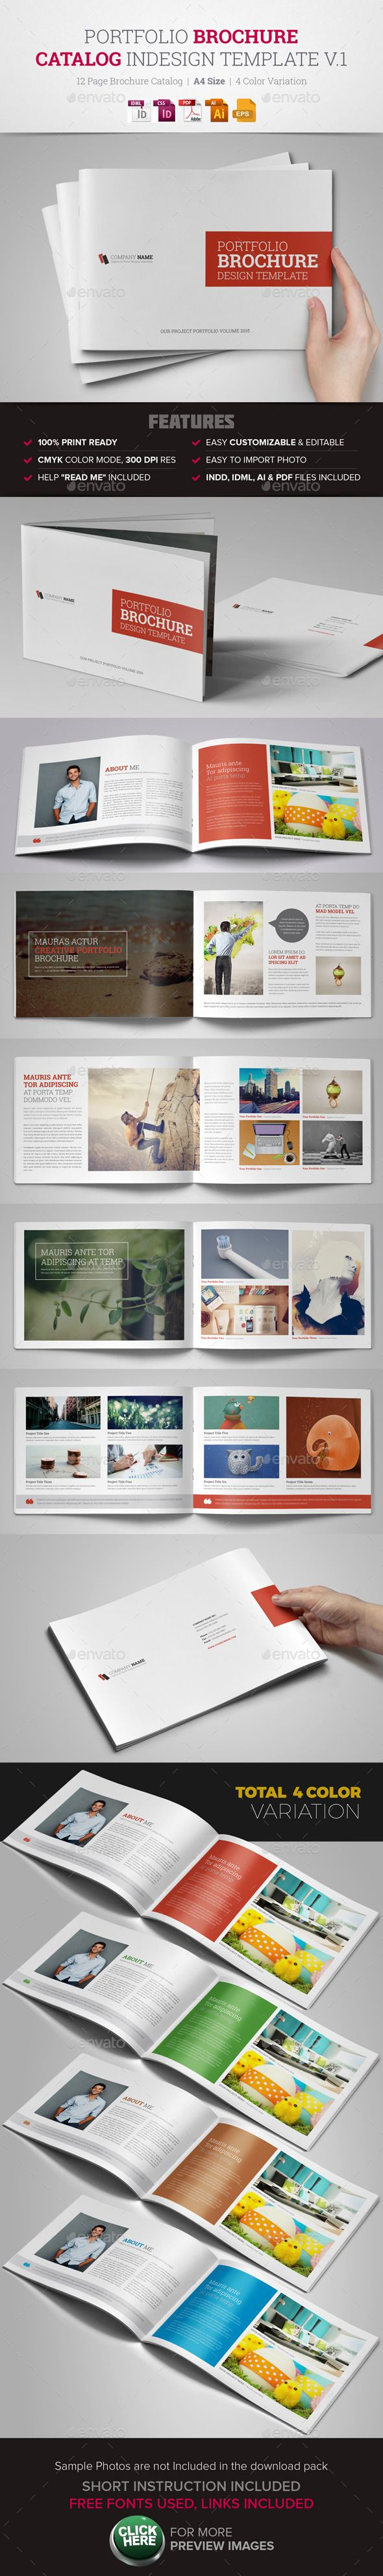 Portfolio Brochure InDesign Template